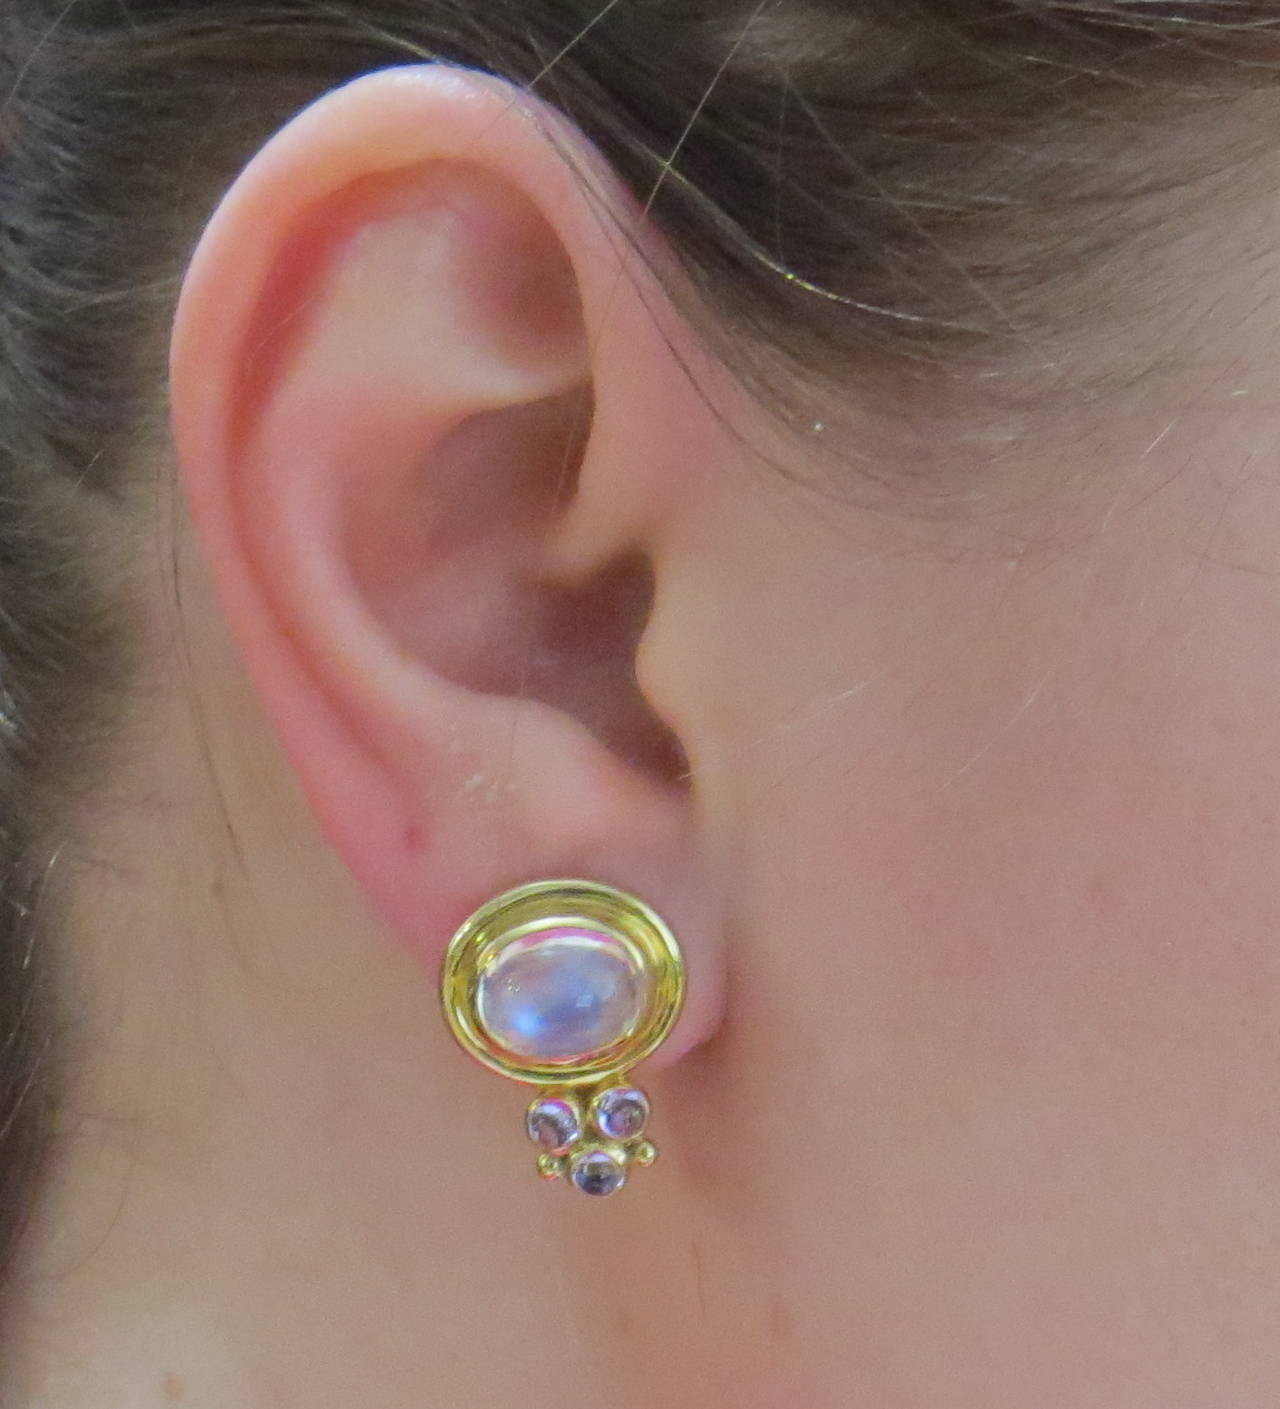 18k Gold Earrings By Temple St Clair Featuring Moonstone Cabochons Are 20mm